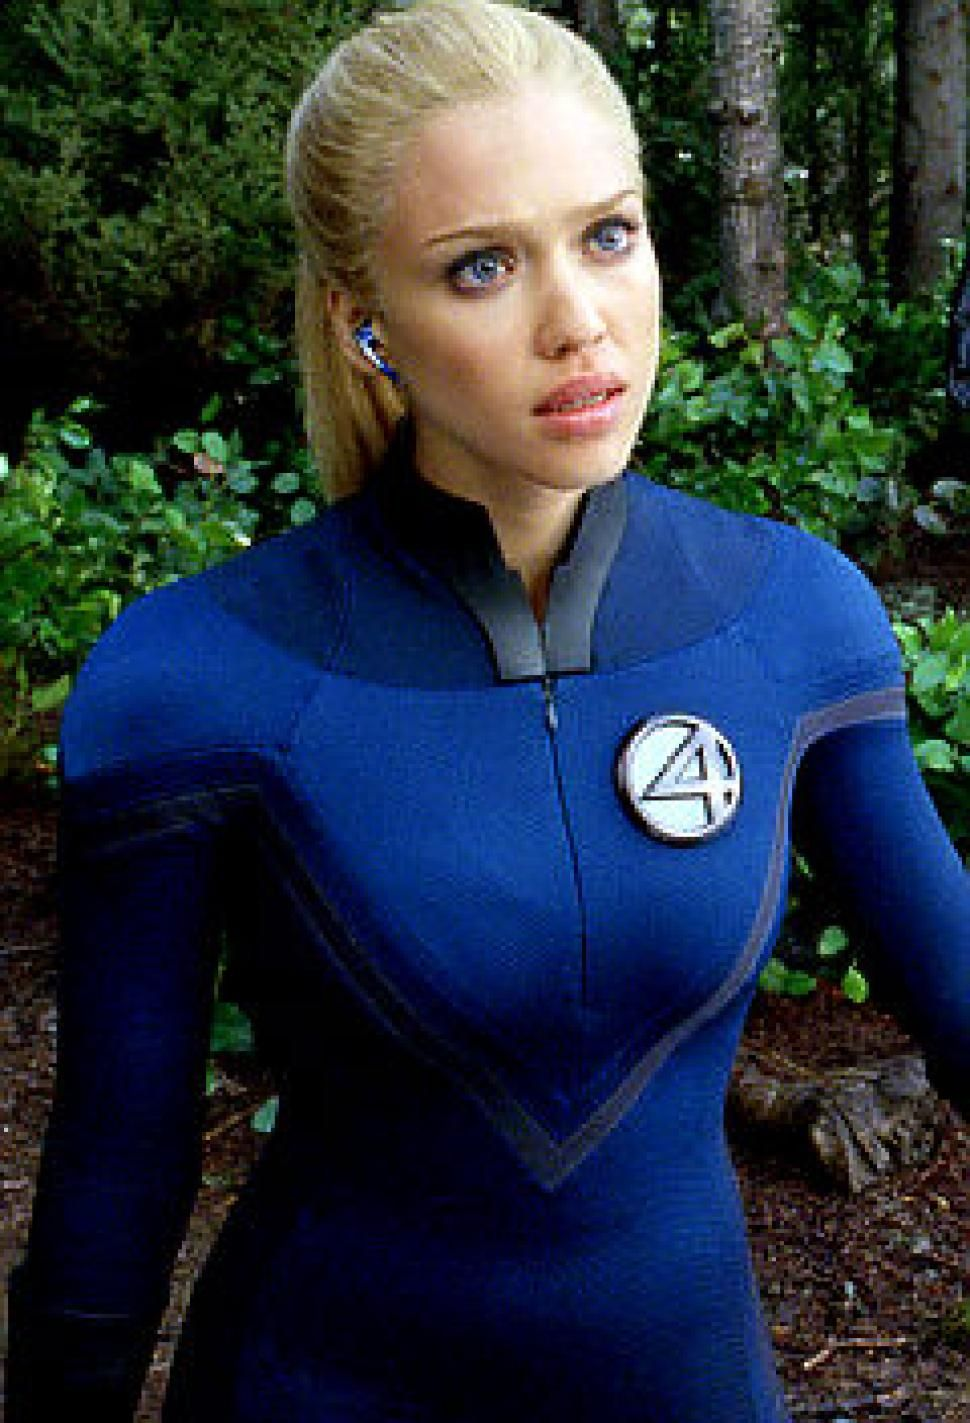 12 Jessica aba as invisible woman from the fantastic 4